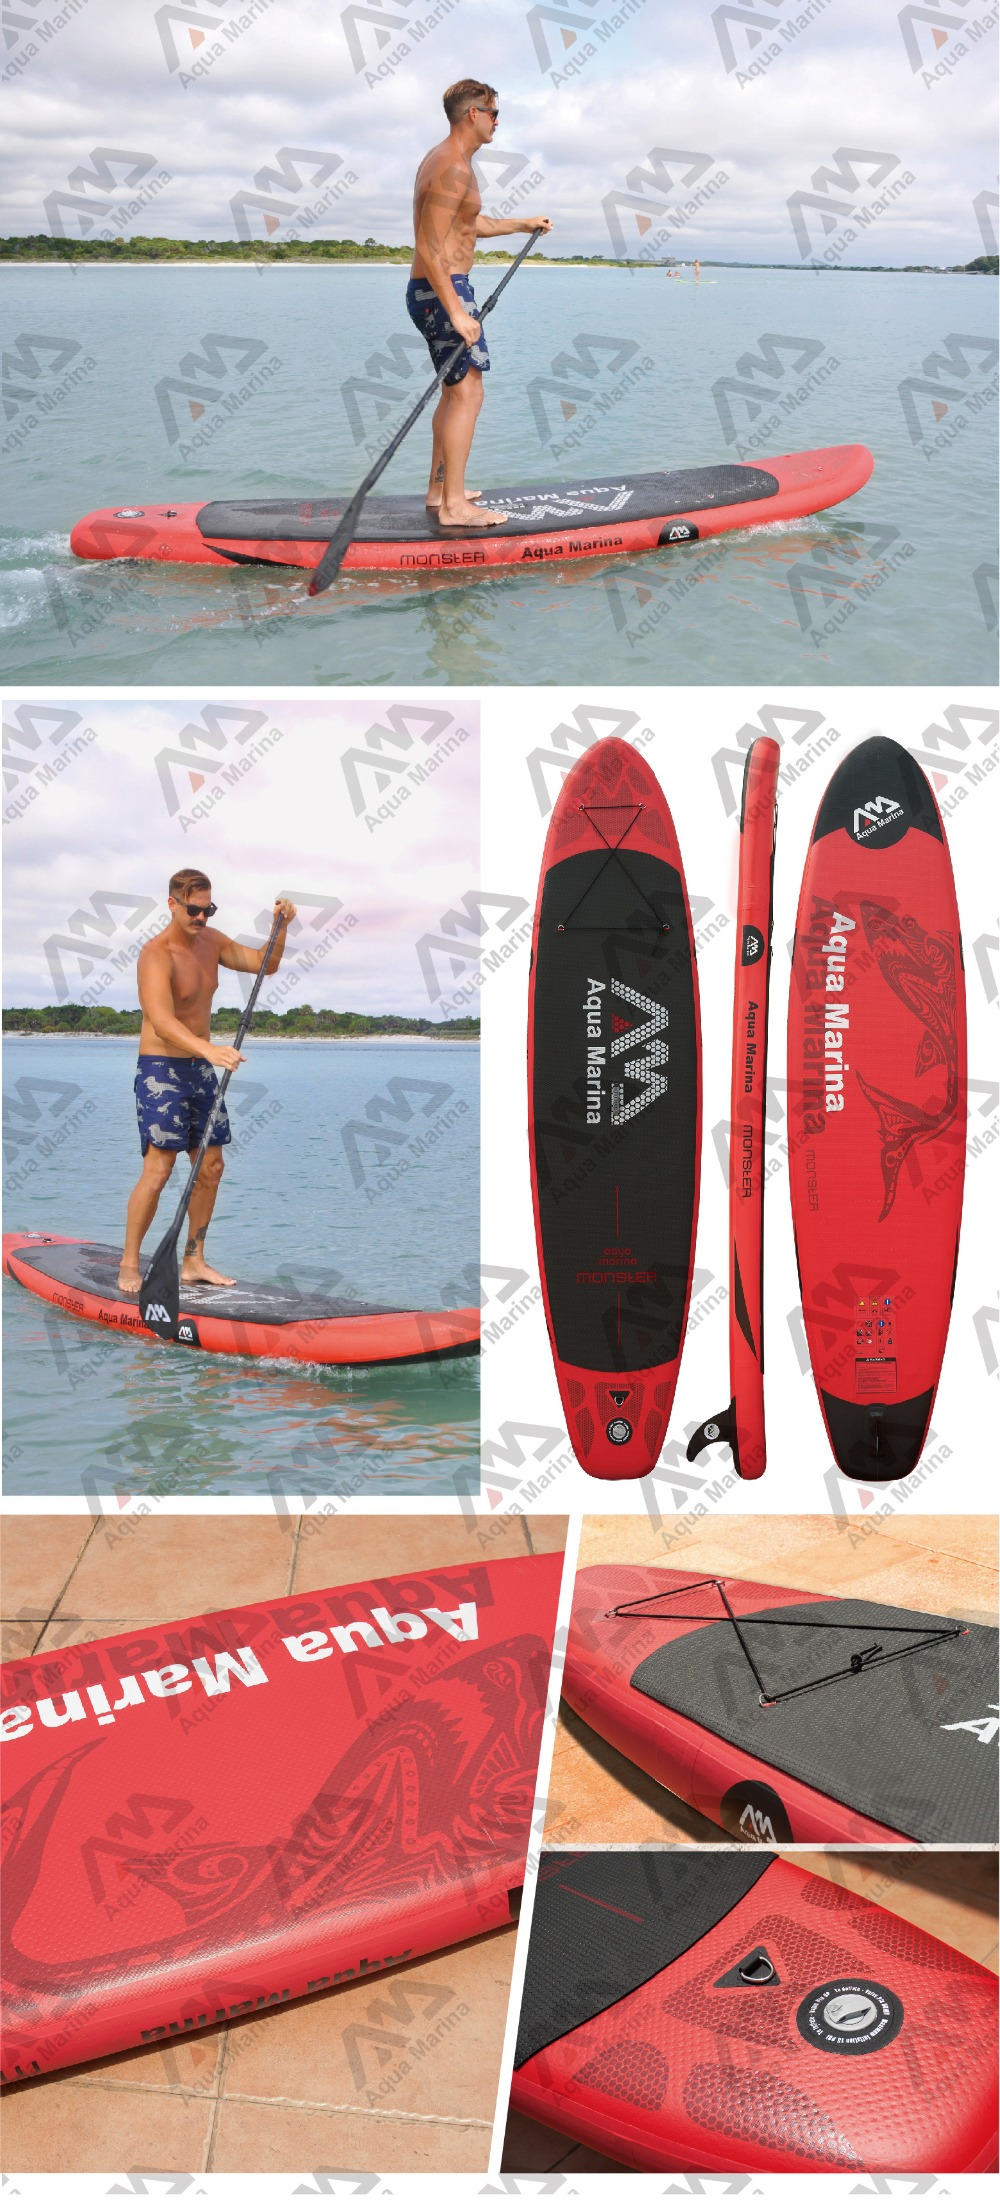 f8def0ccd Inflável SUP Stand up Paddle Board iSUP Paddle Board Inflável Big remador